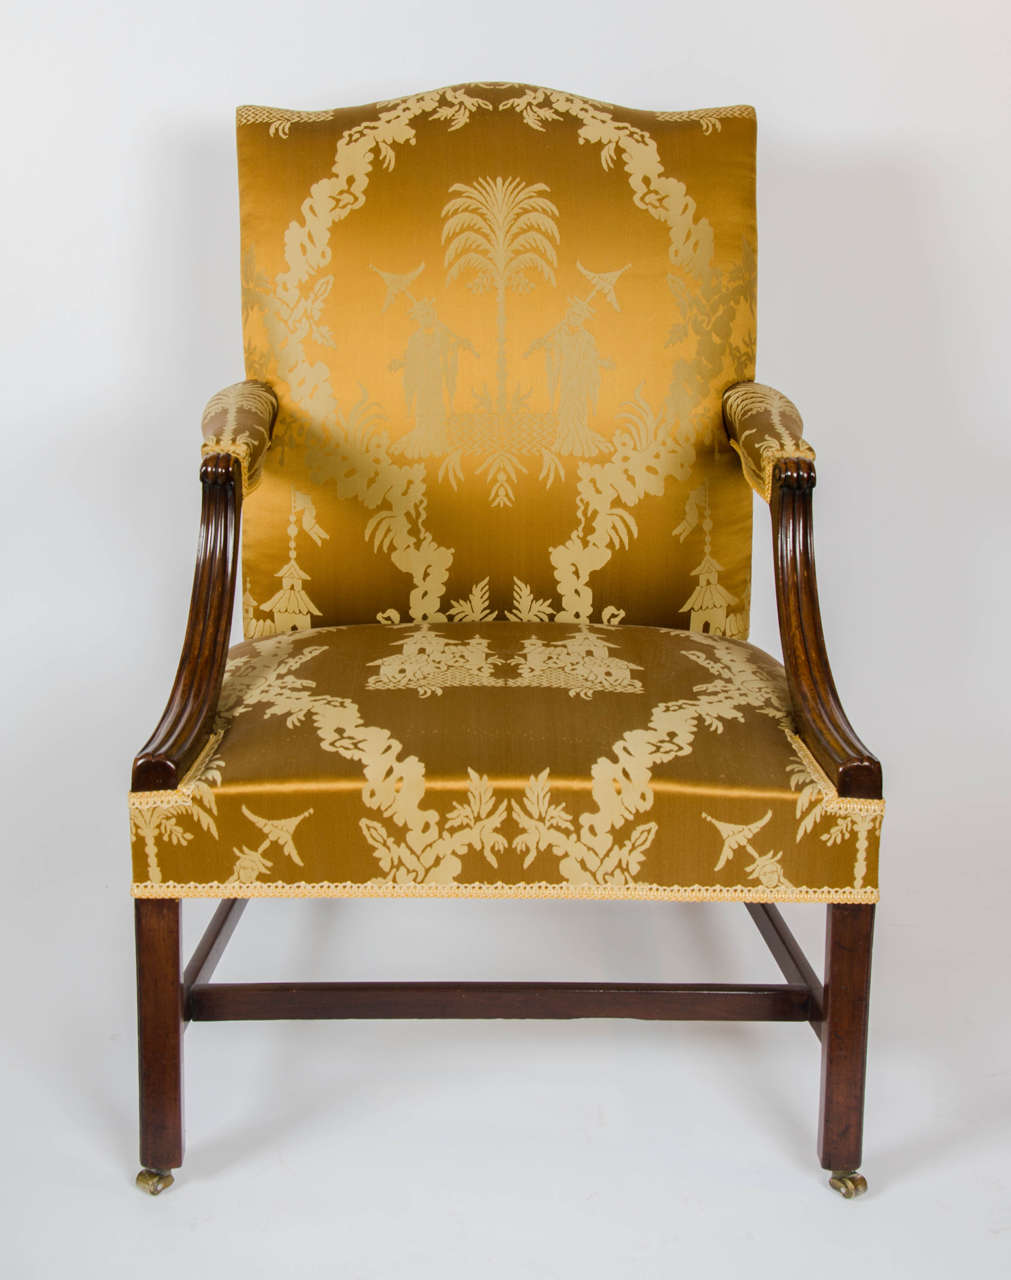 A good mahogany open armchair covered in a golden chinoiserie silk fabric.